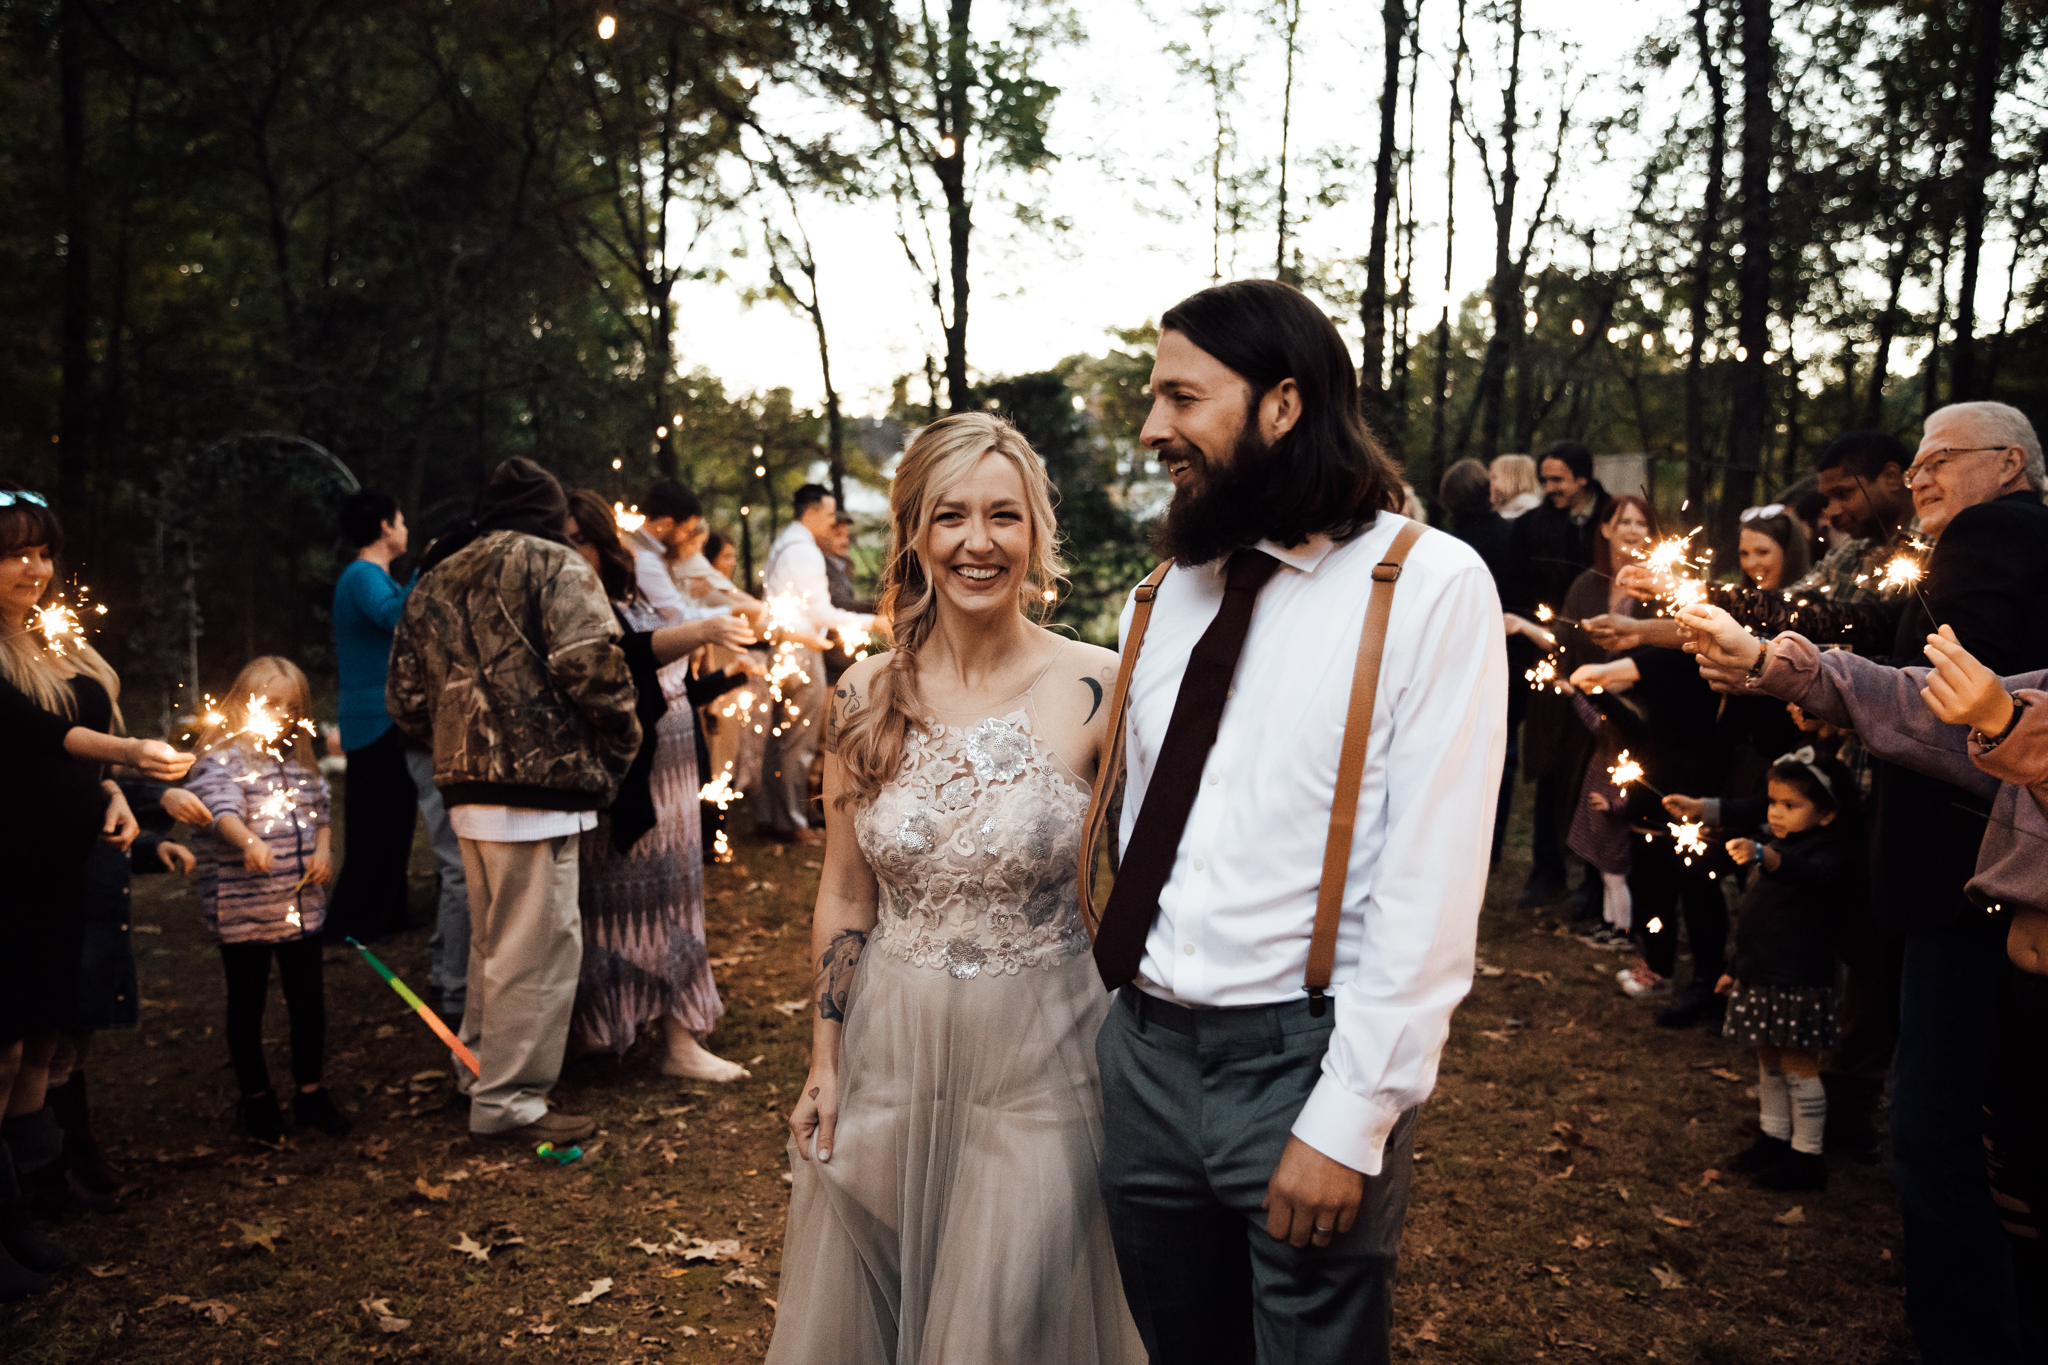 fall-backyard-wedding-memphis-wedding-photographers-thewarmtharoundyou (175 of 181).jpg